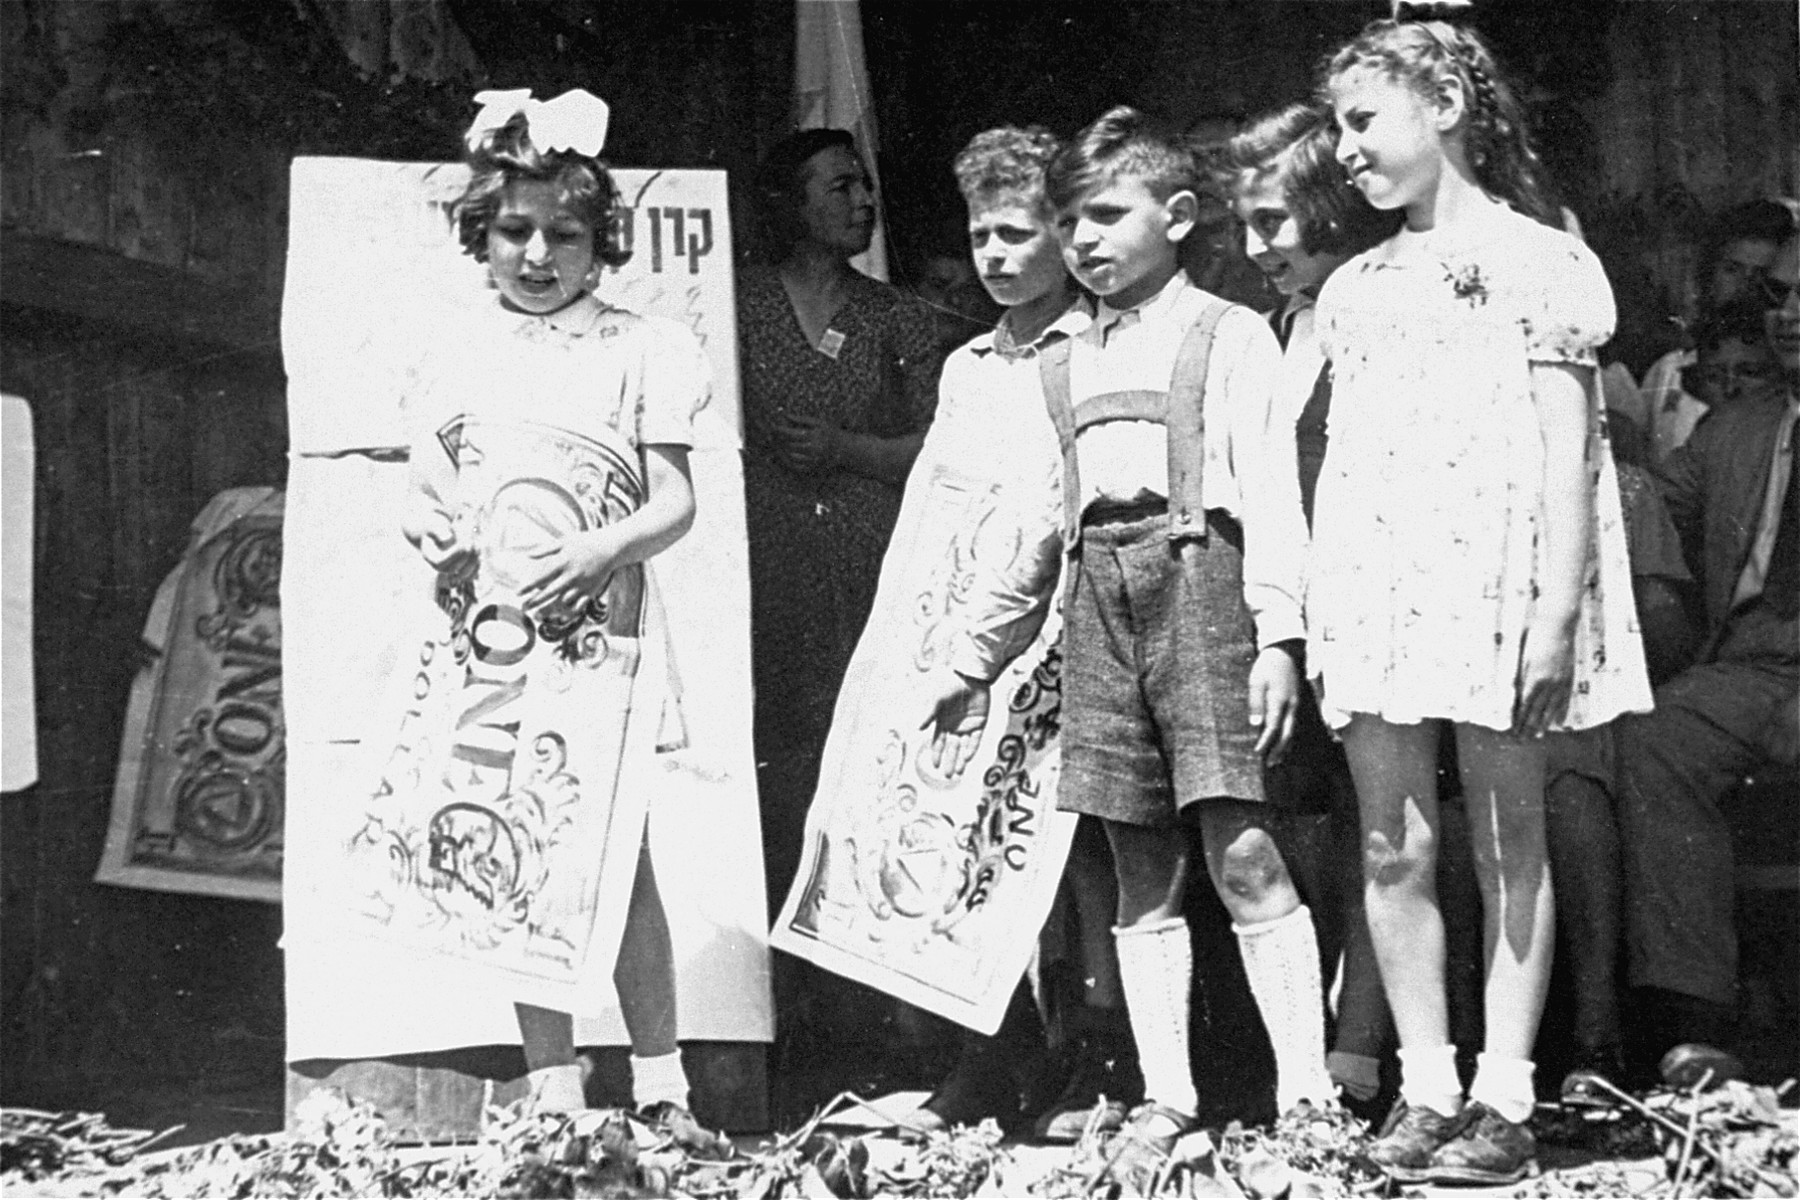 DP children help raise money for the Jewish National Fund in a displaced persons camp in Germany.